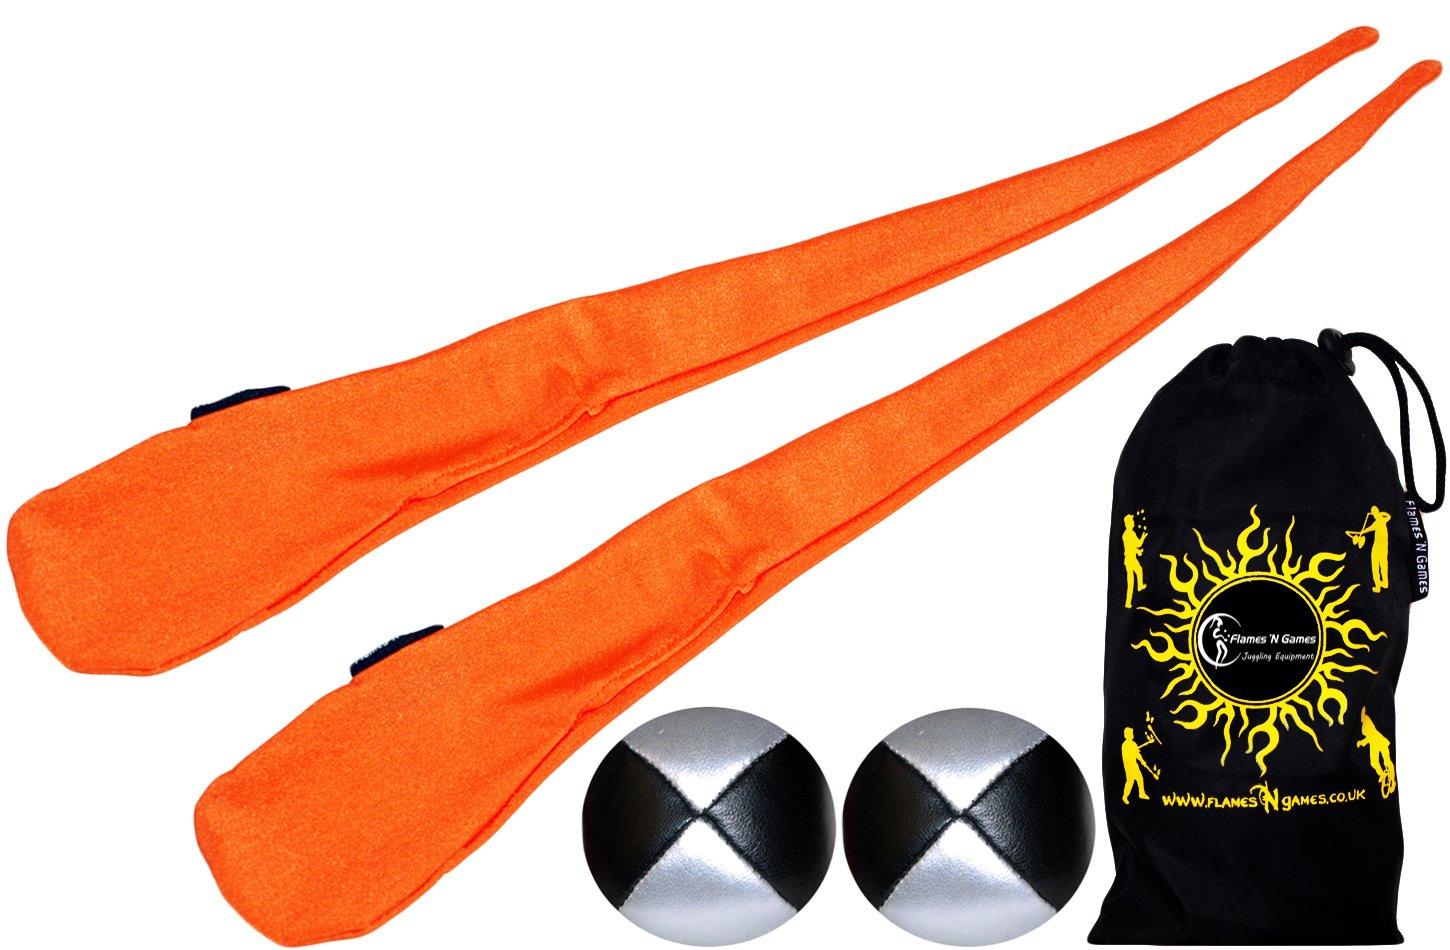 Flames N Games Sock Poi Set ORANGE Pair of Quality Stretchy Lycra Spinning Poi Socks 2x90g Balls Travel Bag.